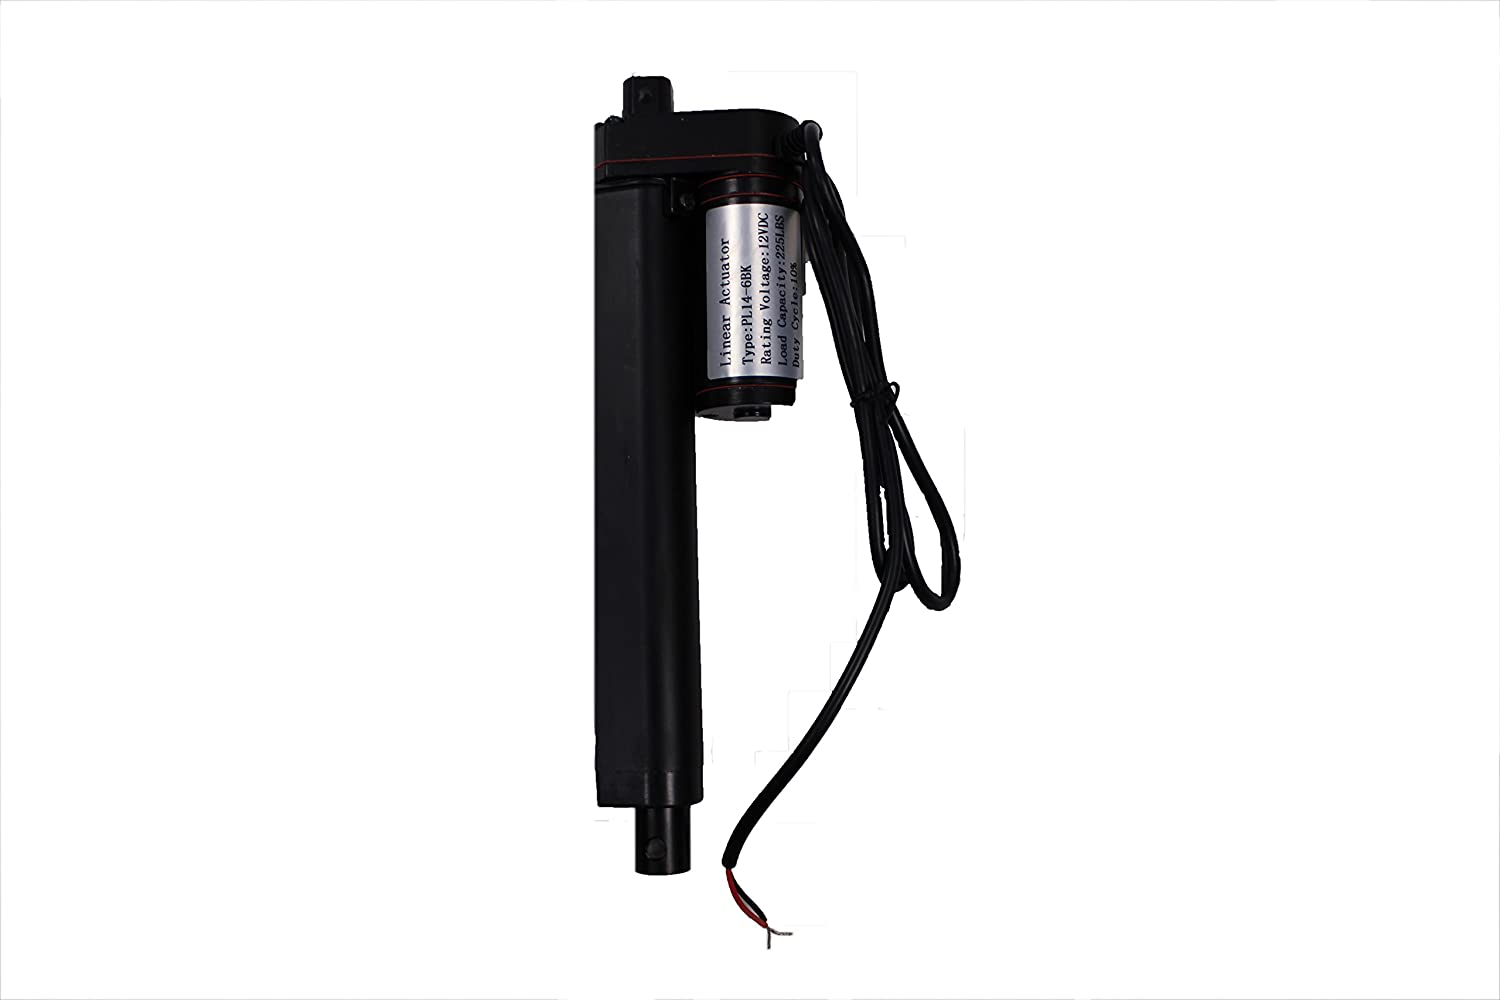 6 Inch Linear Actuator 12 Volt 225 Pounds 46 Amp Draw Wiring A Switch For 12v Drawblack Automotive